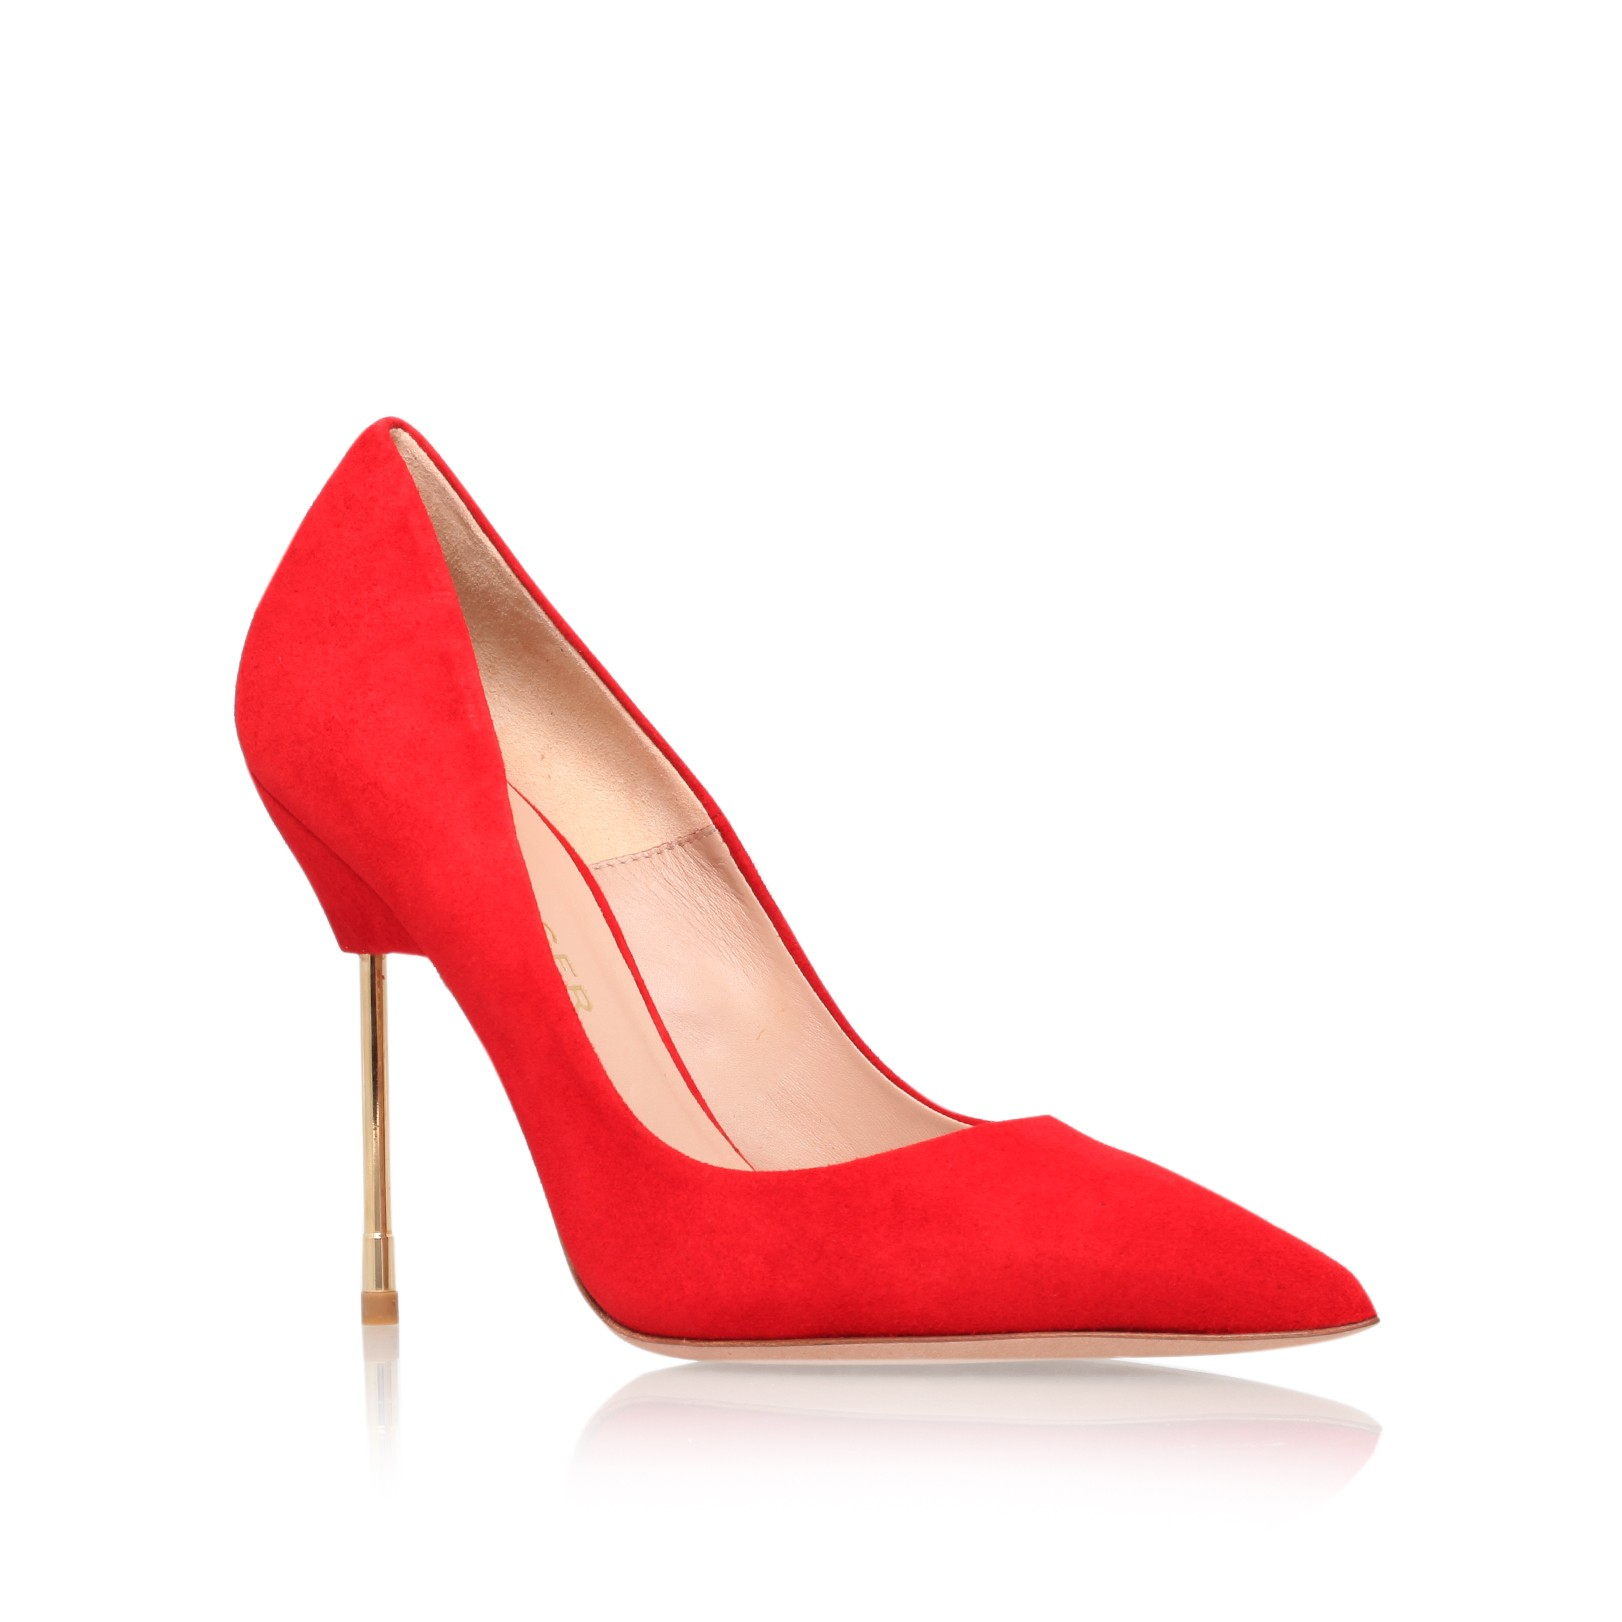 Kurt Geiger | BRITTON Red court shoe with stiletto heel by Kurt Geiger London